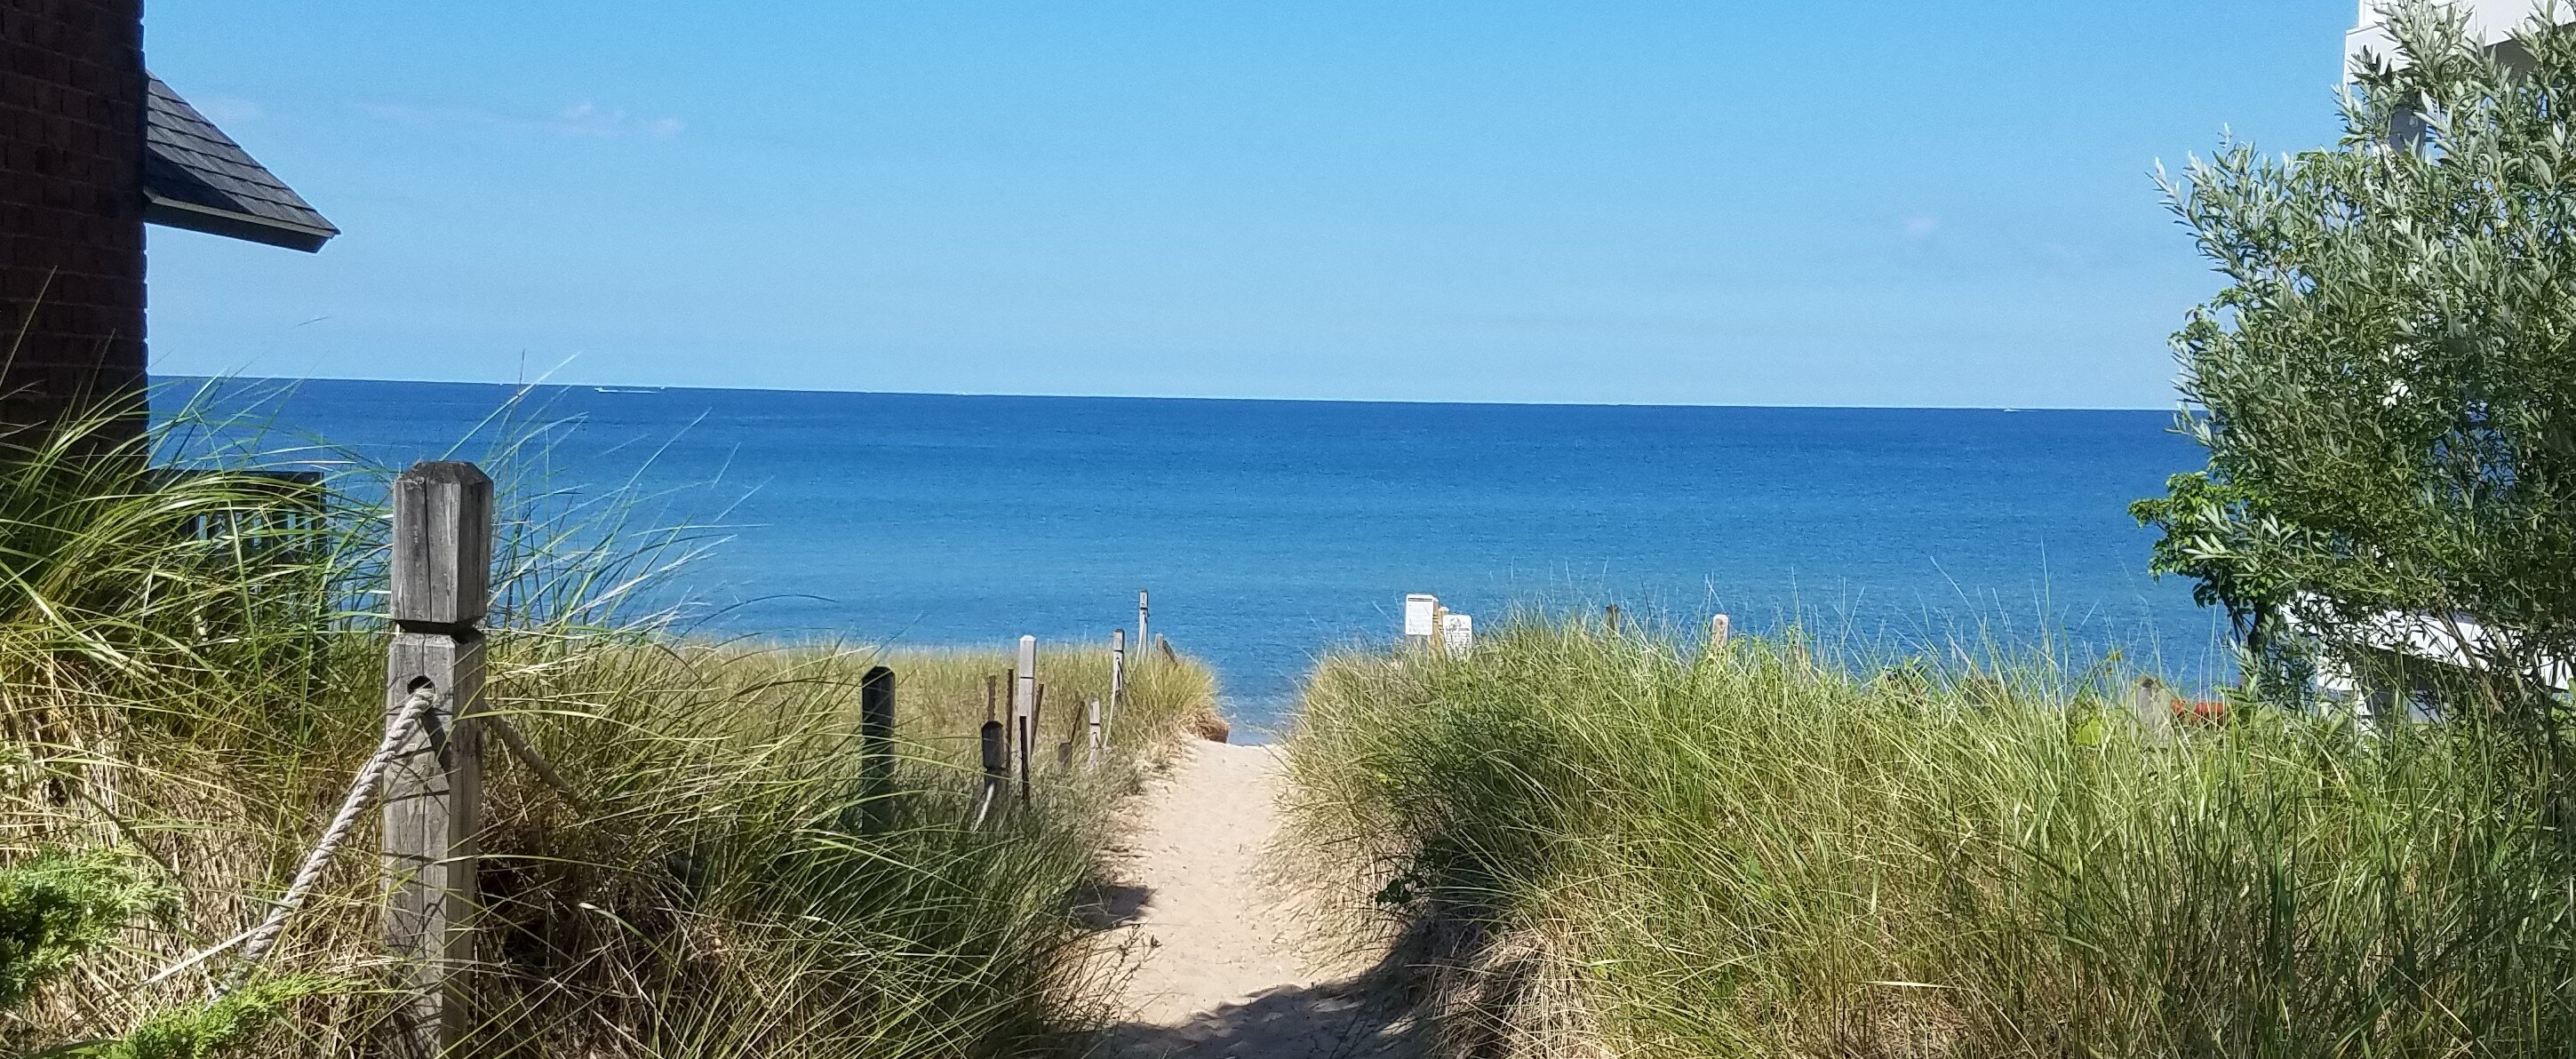 Running in Grand Haven